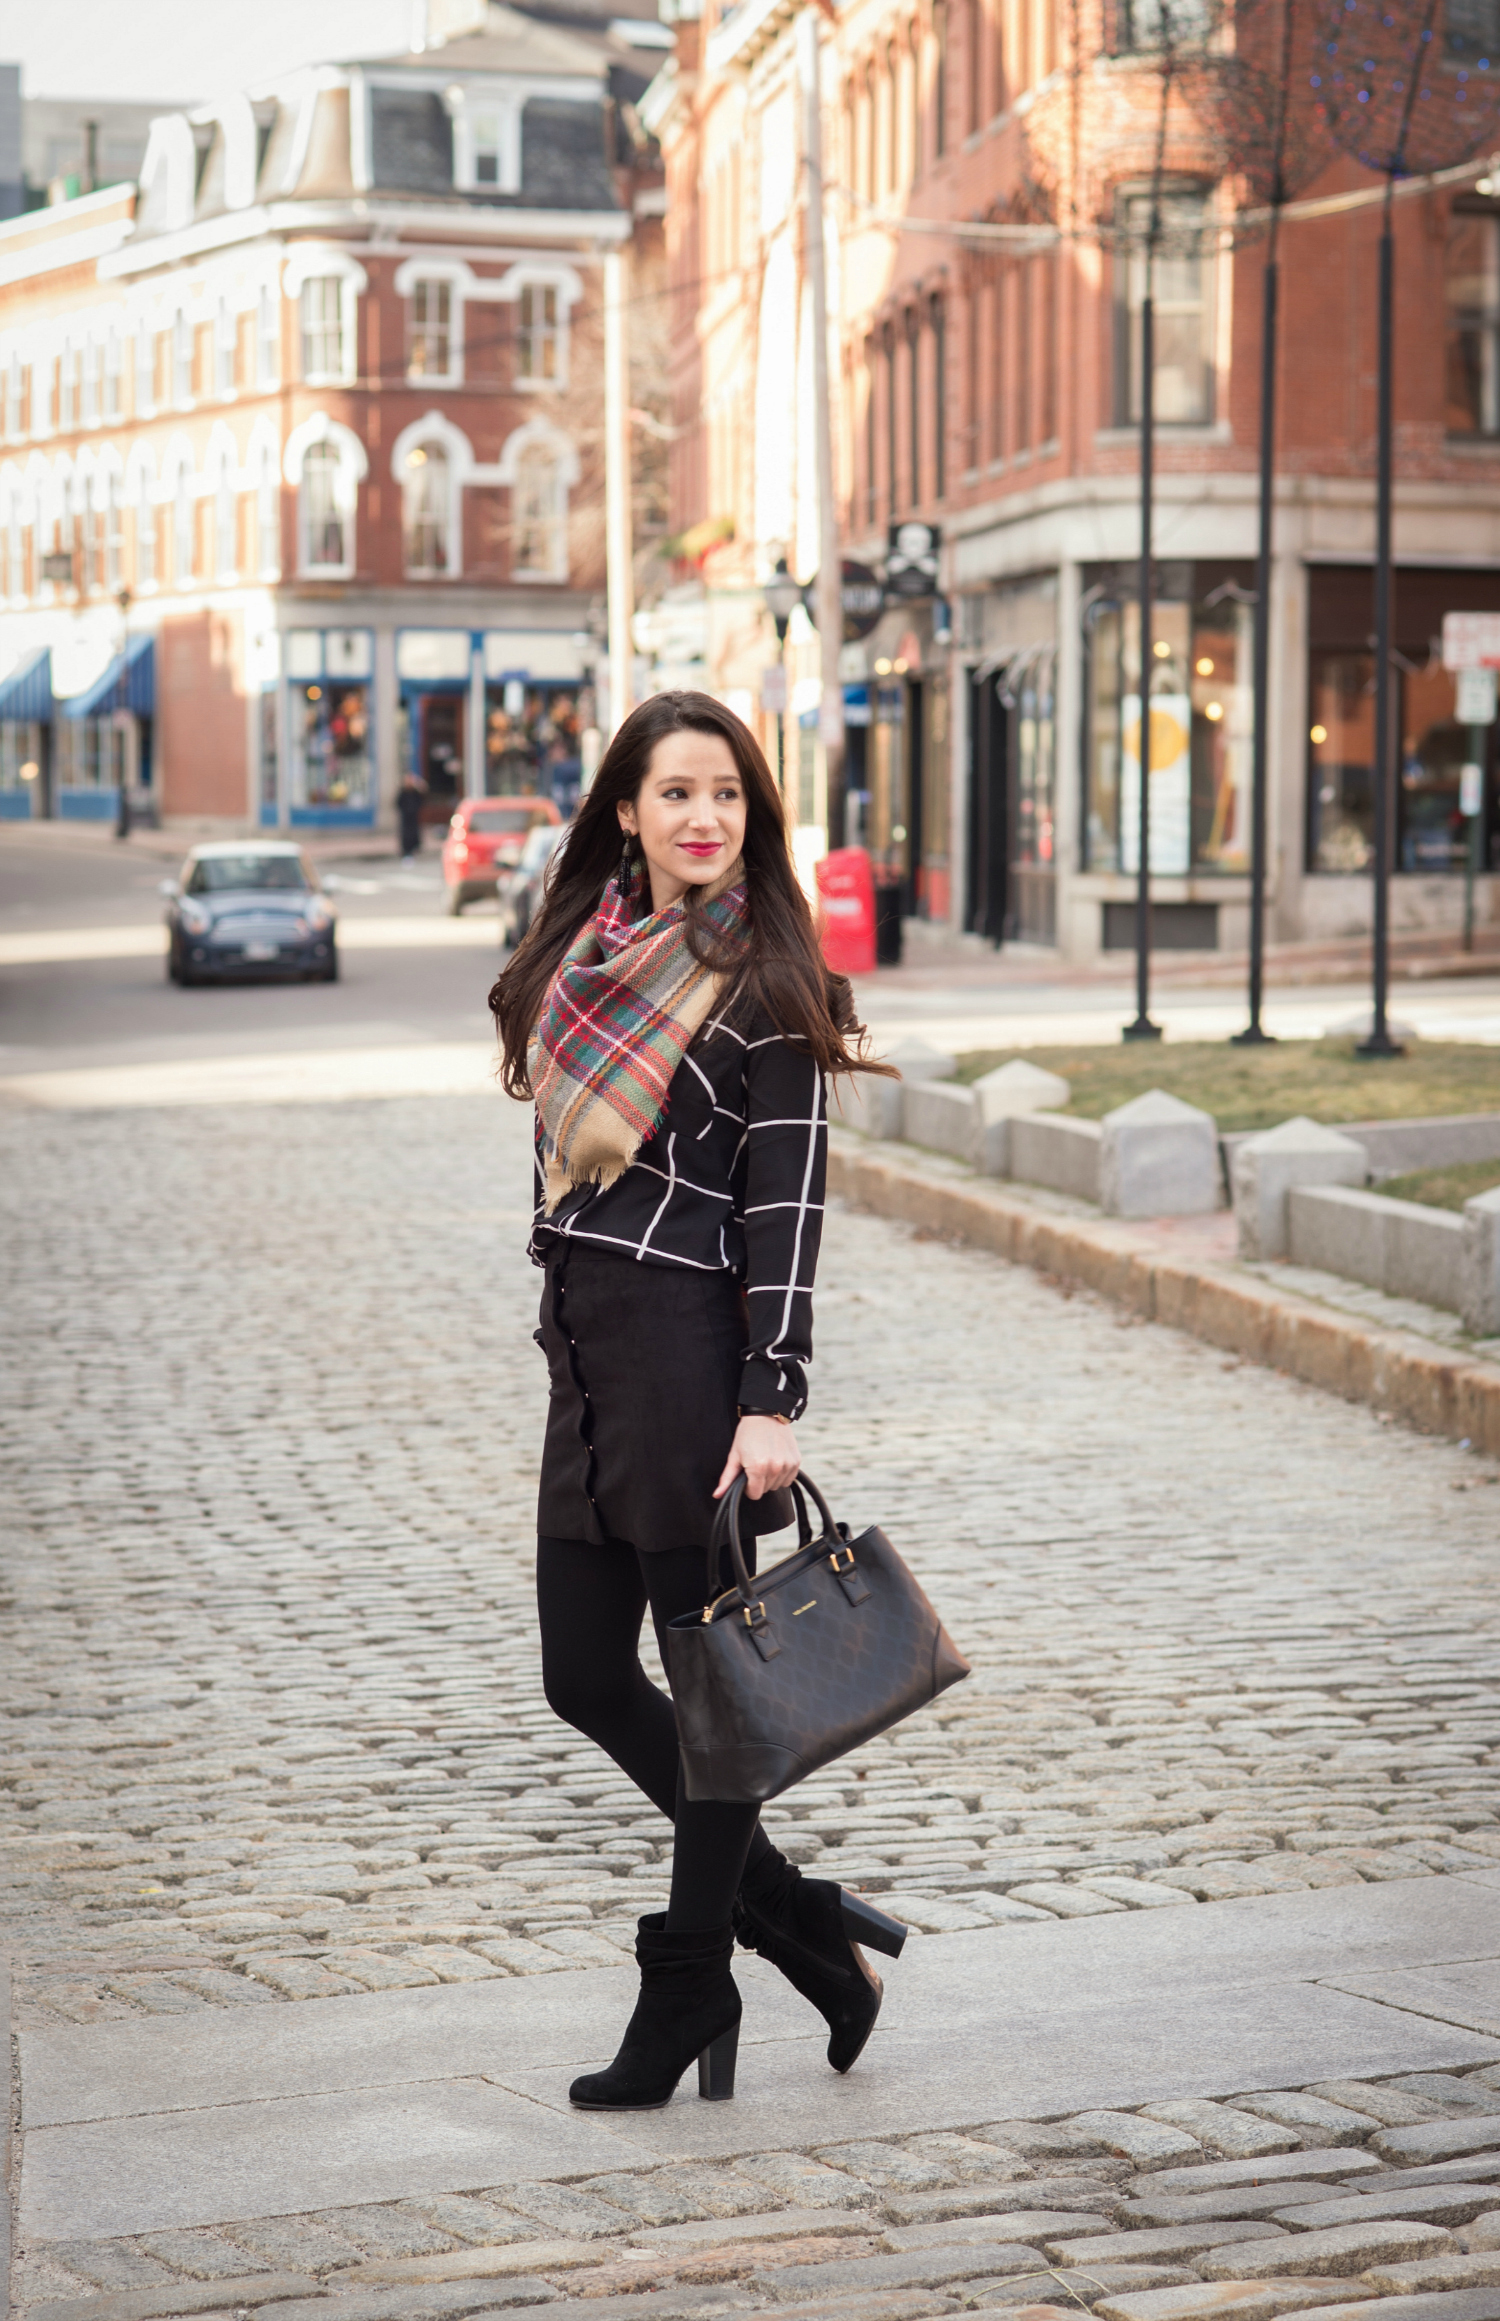 Chic all black winter outfit with a pop of color in the scarf